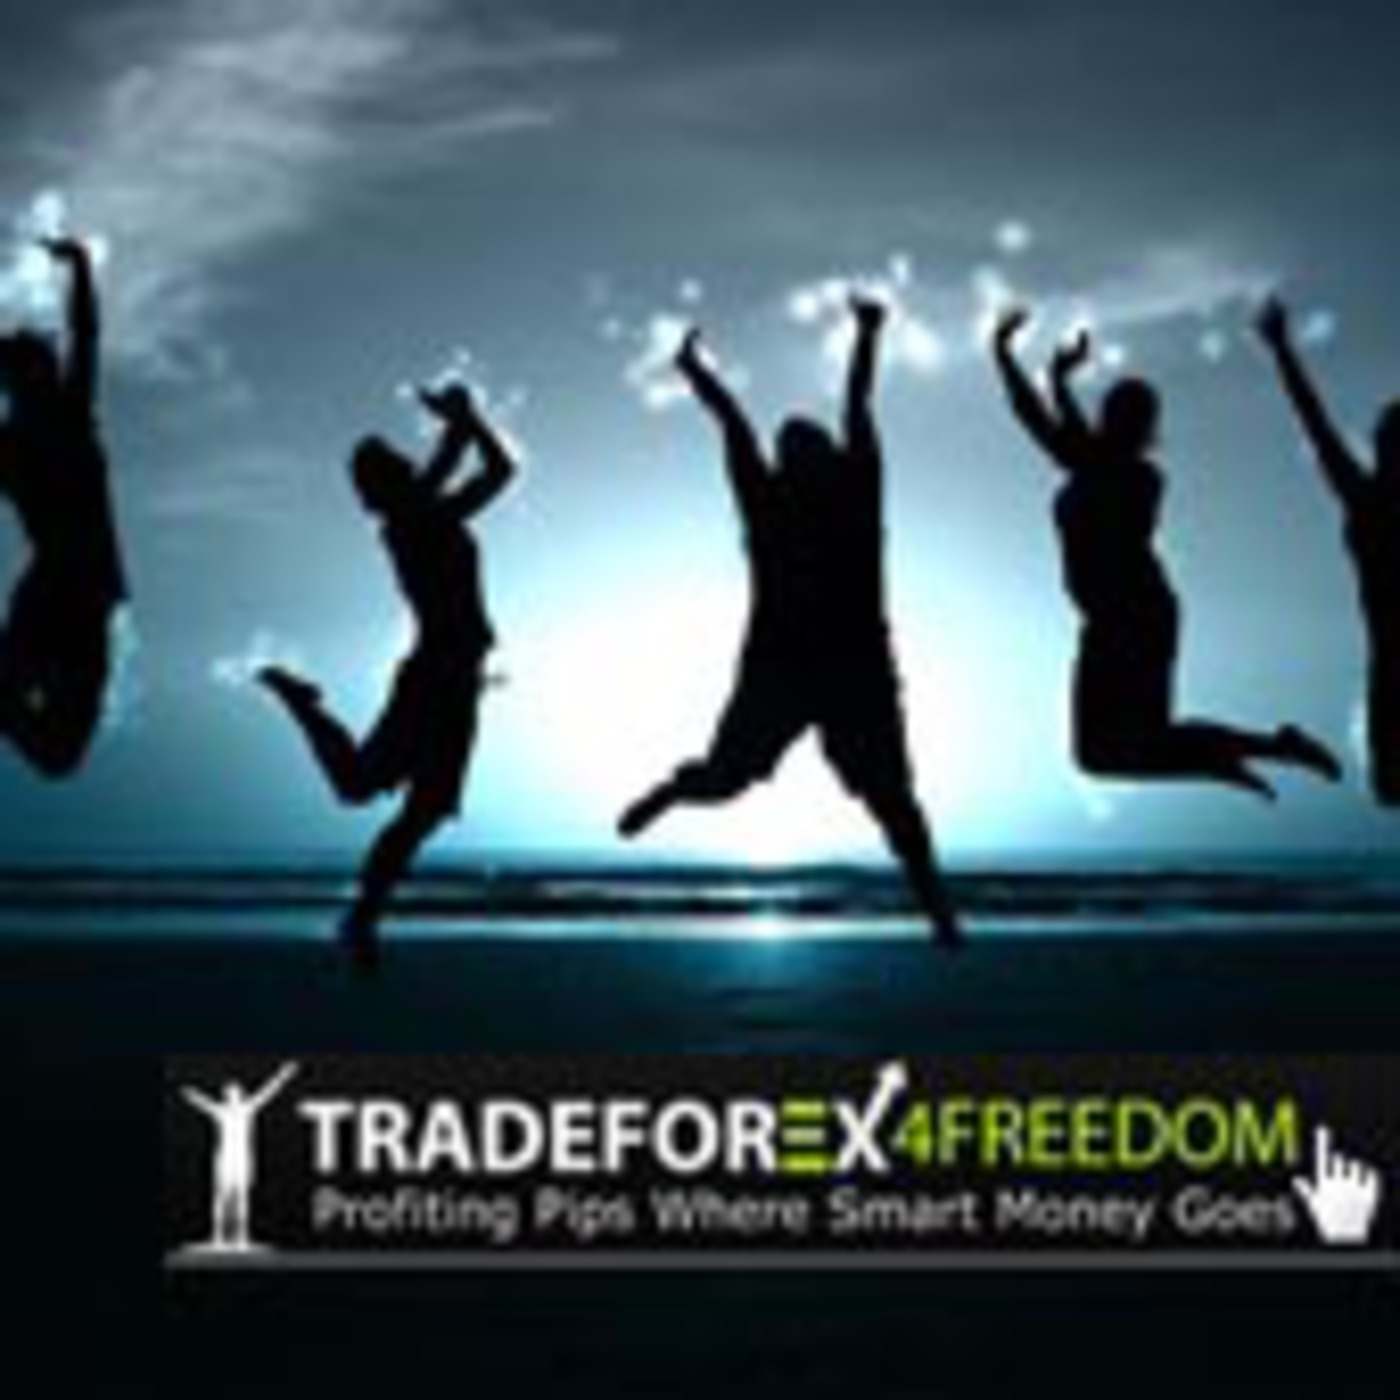 Tradeforex4freedom Podcast Episode 1: Change Your Future , By Drawing On Your Emotions